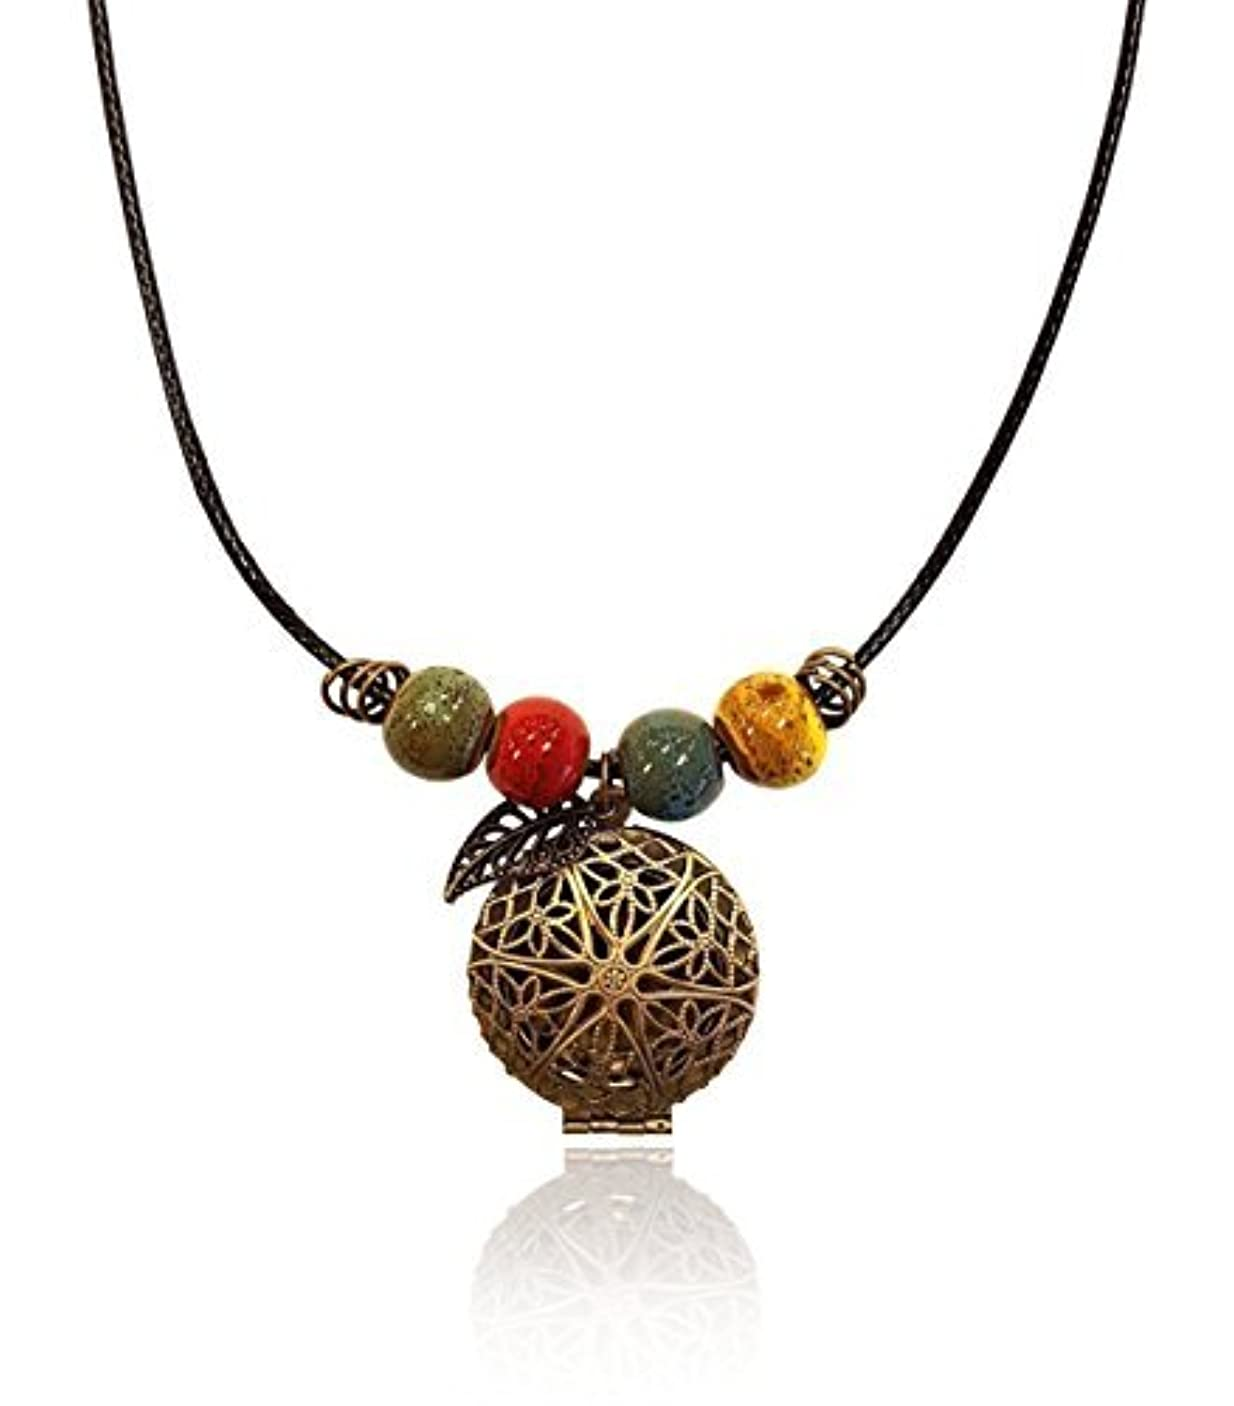 パケット満了同一のBrass-tone BOHO Colorful Bohemian Beaded Gypsy Essential Oil Diffuser Jewelry Aromatherapy Locket Pendant includes...